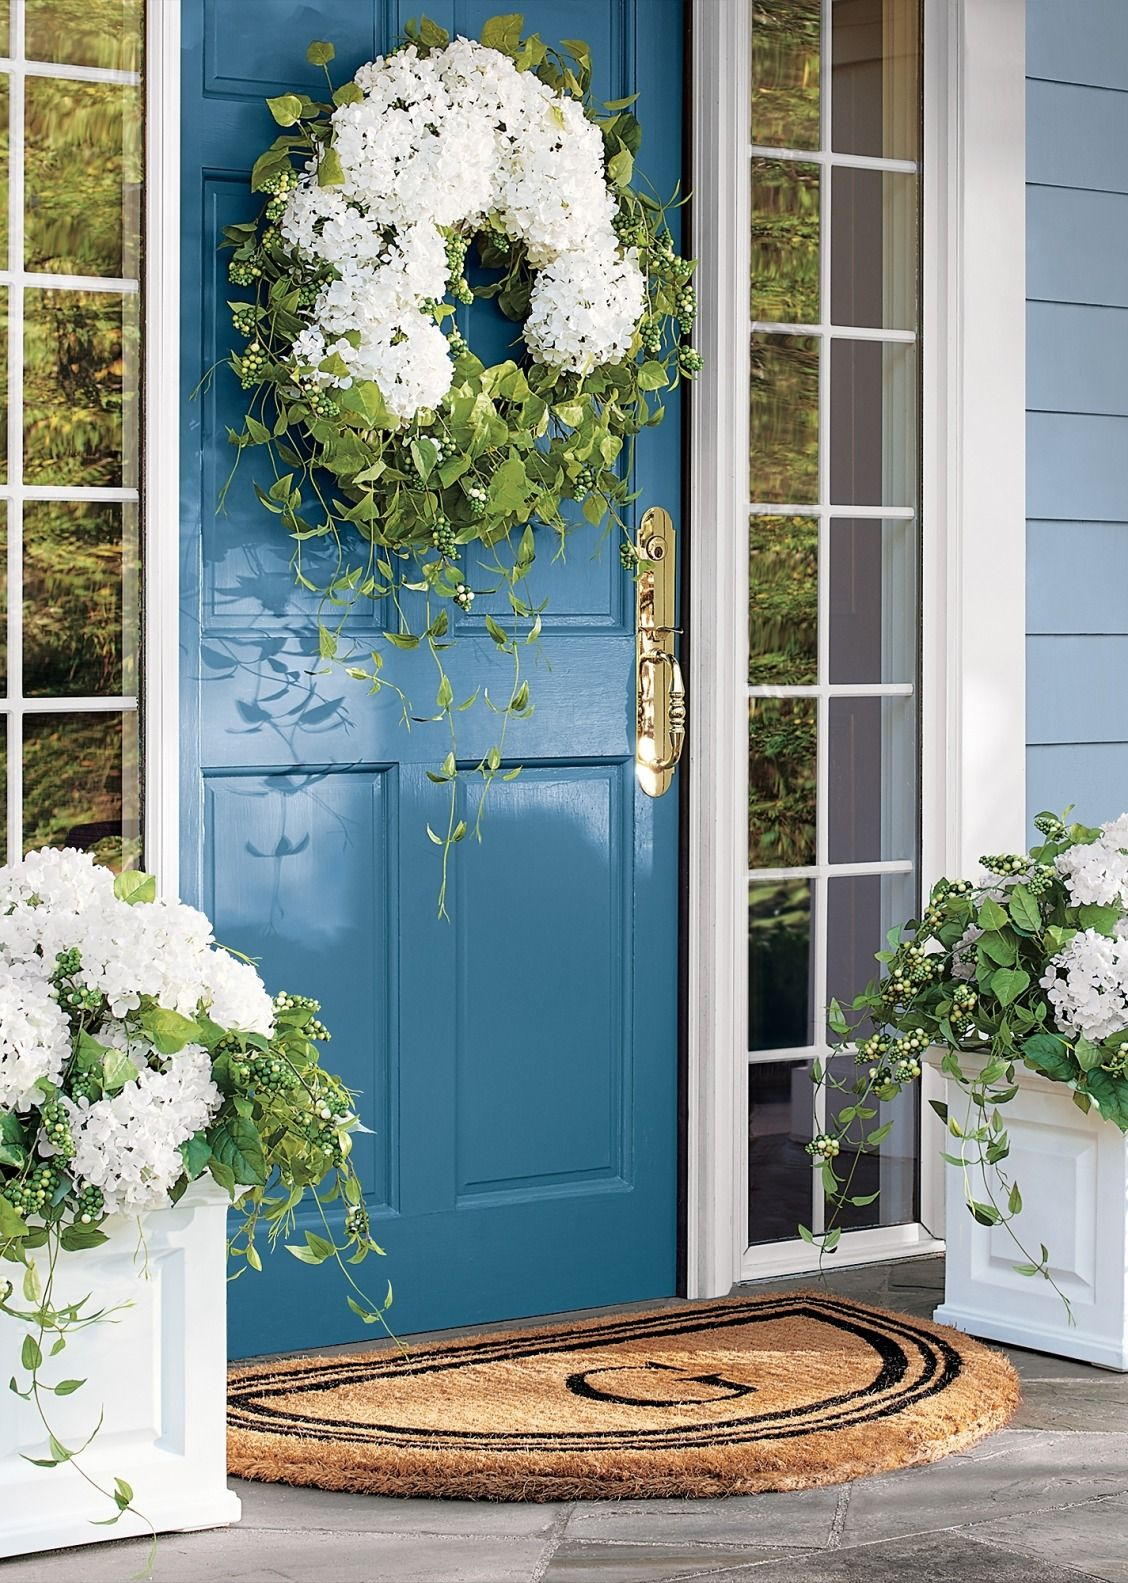 Haley Hydrangea Greenery & Haley Hydrangea Greenery | Hydrangea Porch and Flowers pezcame.com